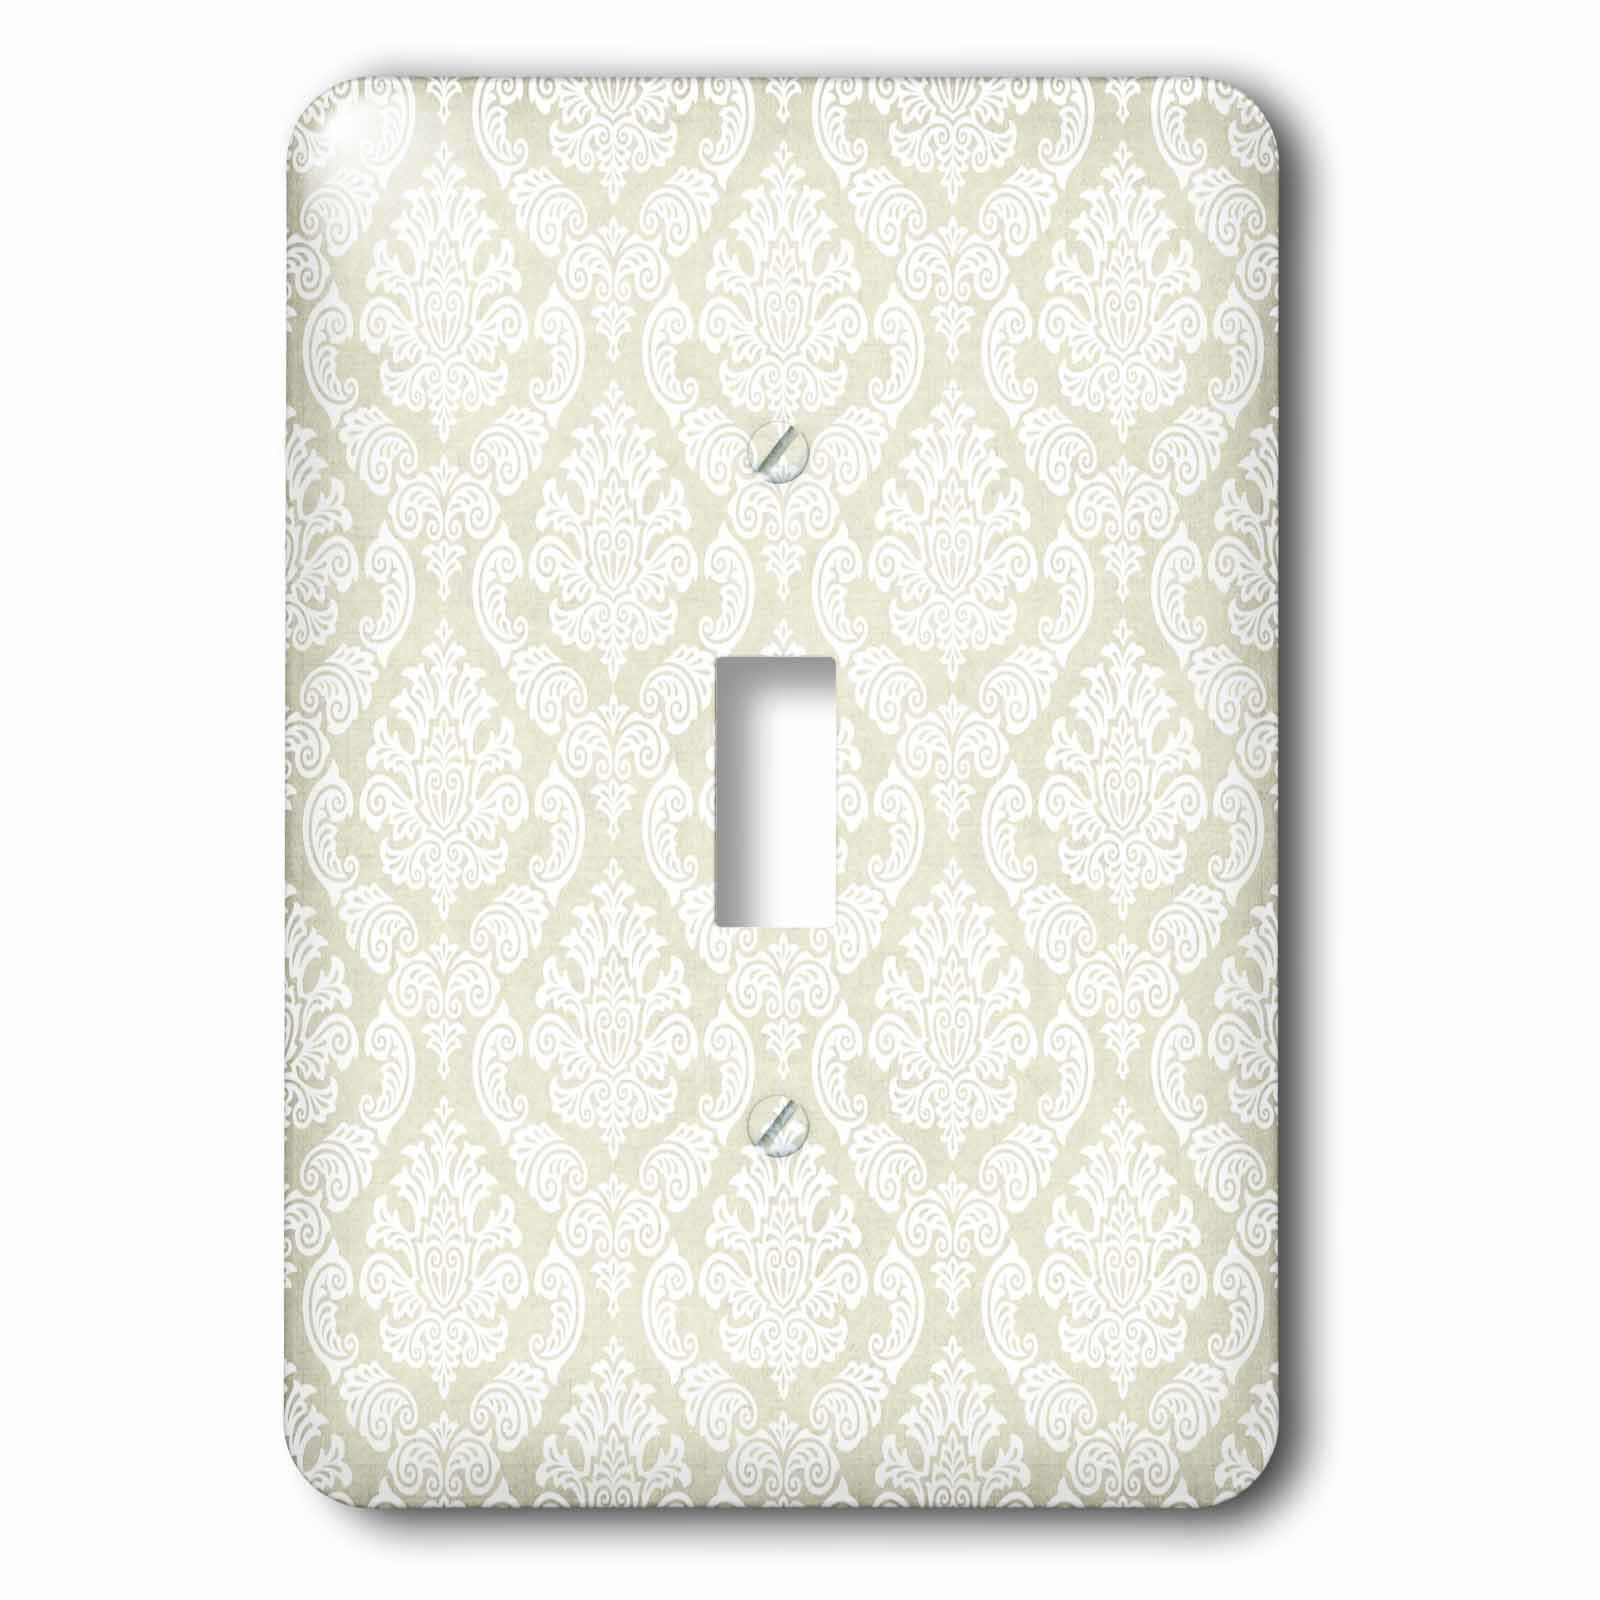 3drose On Elegant Damask 1 Gang Toggle Light Switch Wall Plate Wayfair